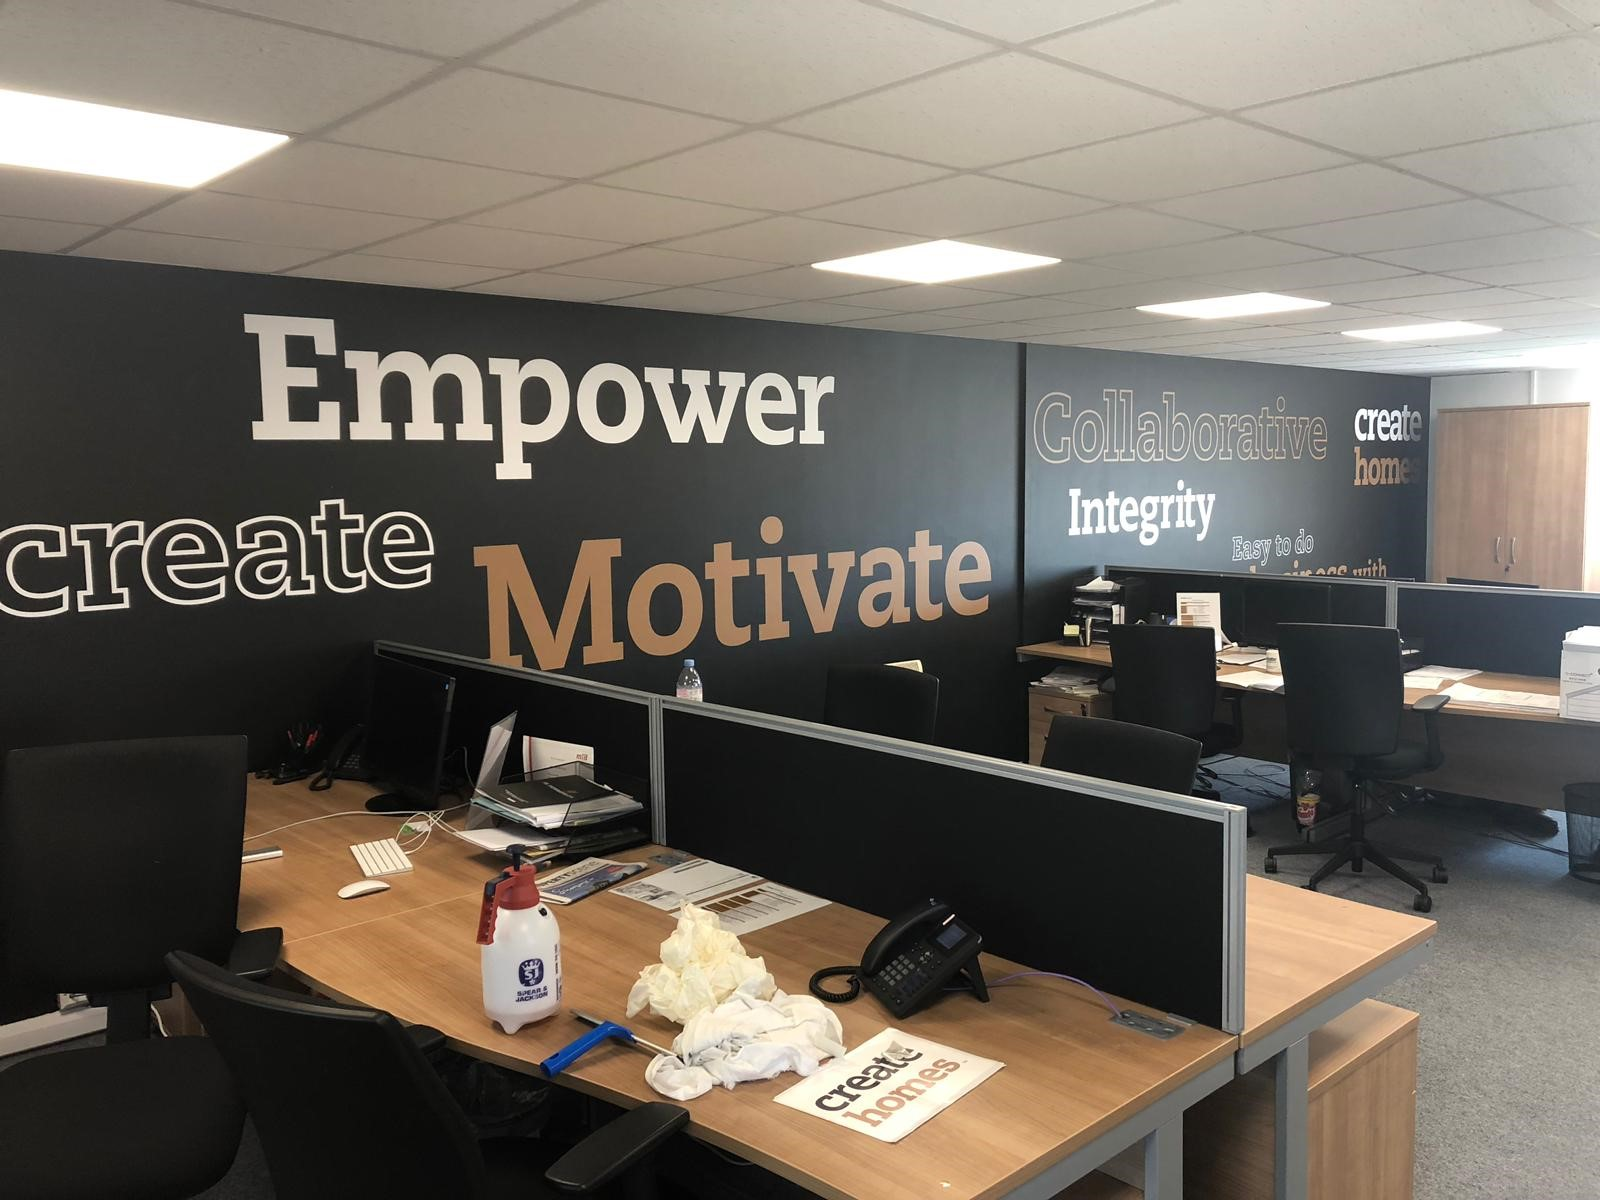 Internal Wall Lettering, Wall Graphics applied to Office Space Walls